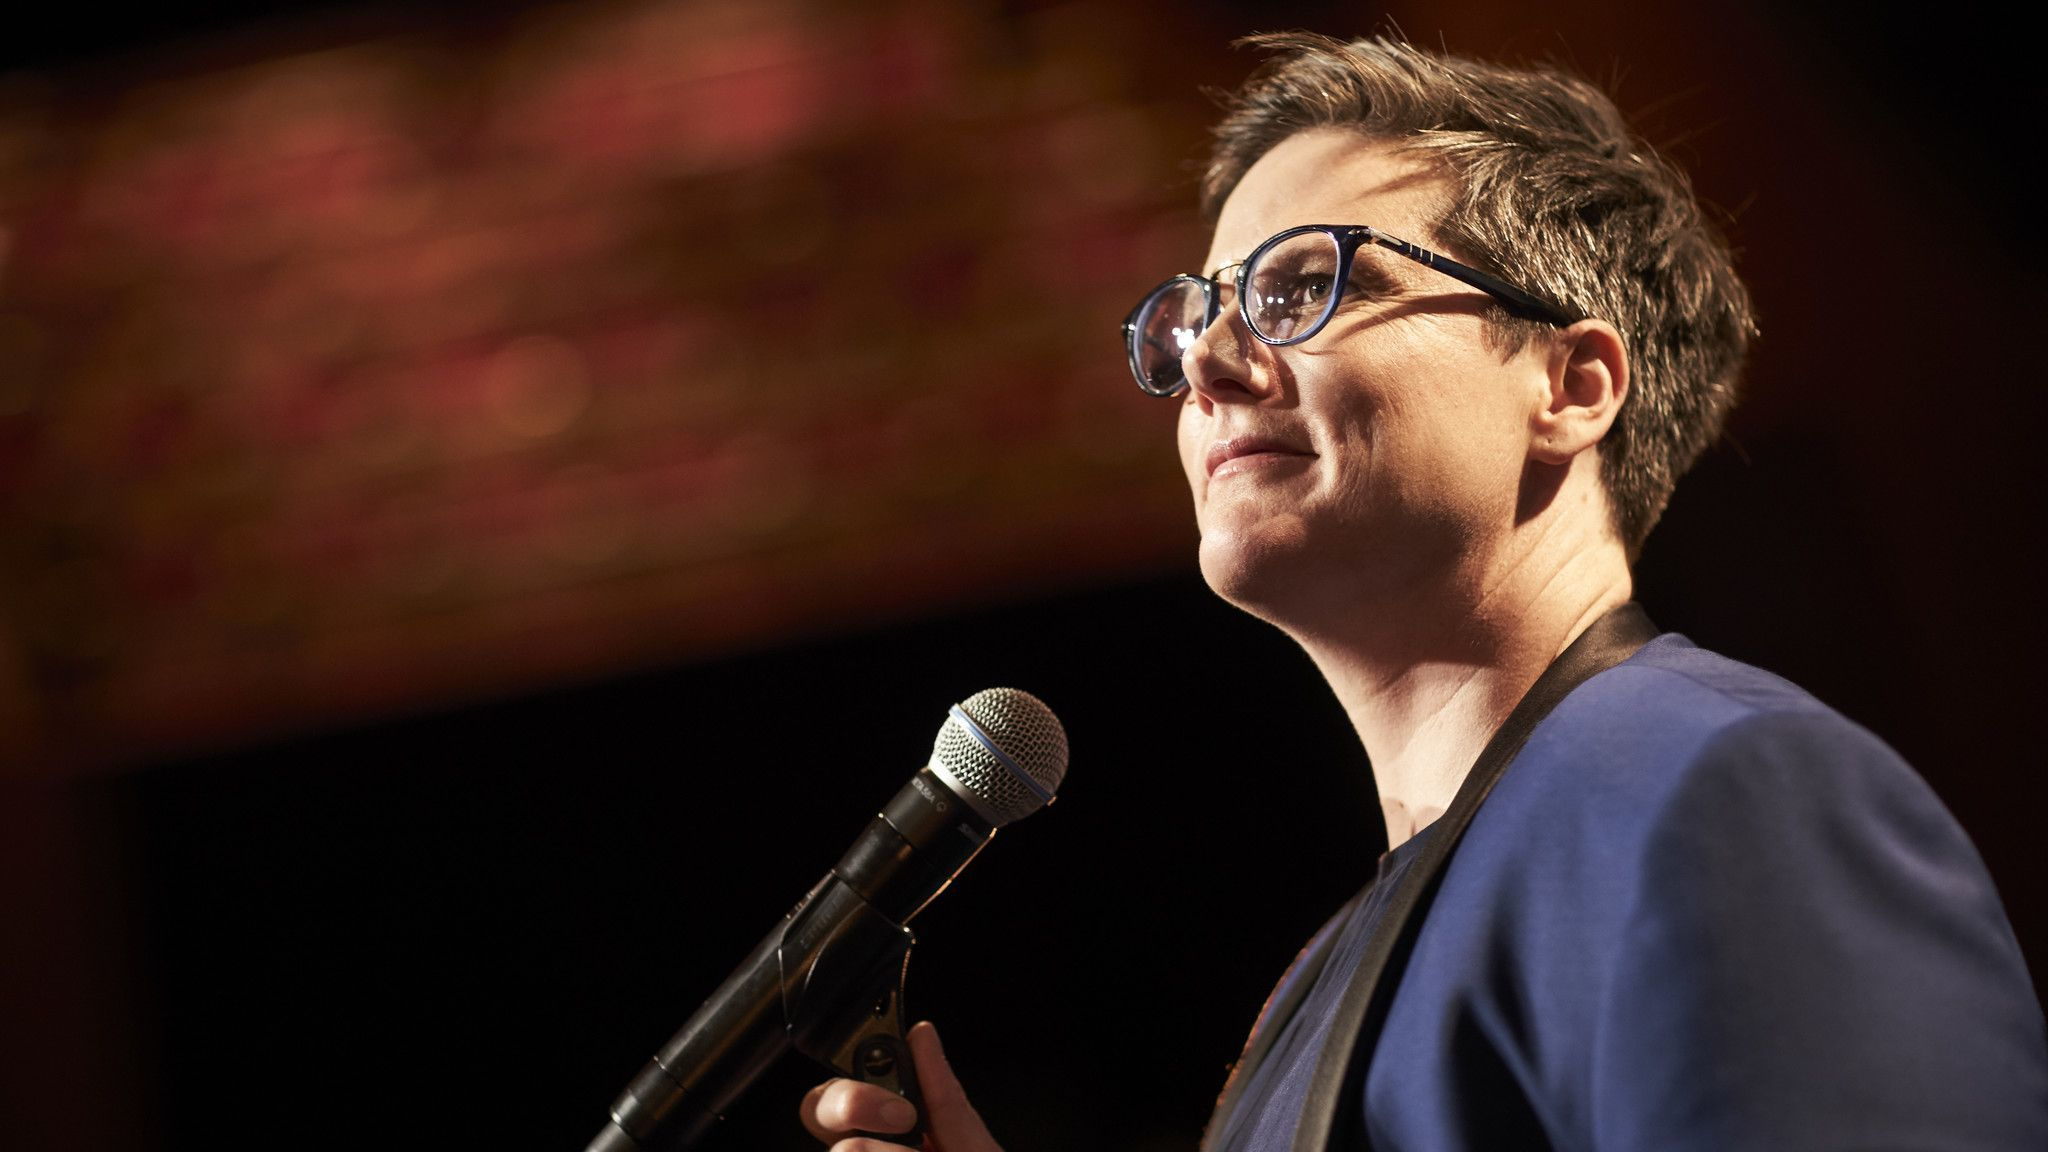 Hannah Gadsby at the Chicago Theatre: Different from 'Nanette' but she still likes to 'rummage' with your head